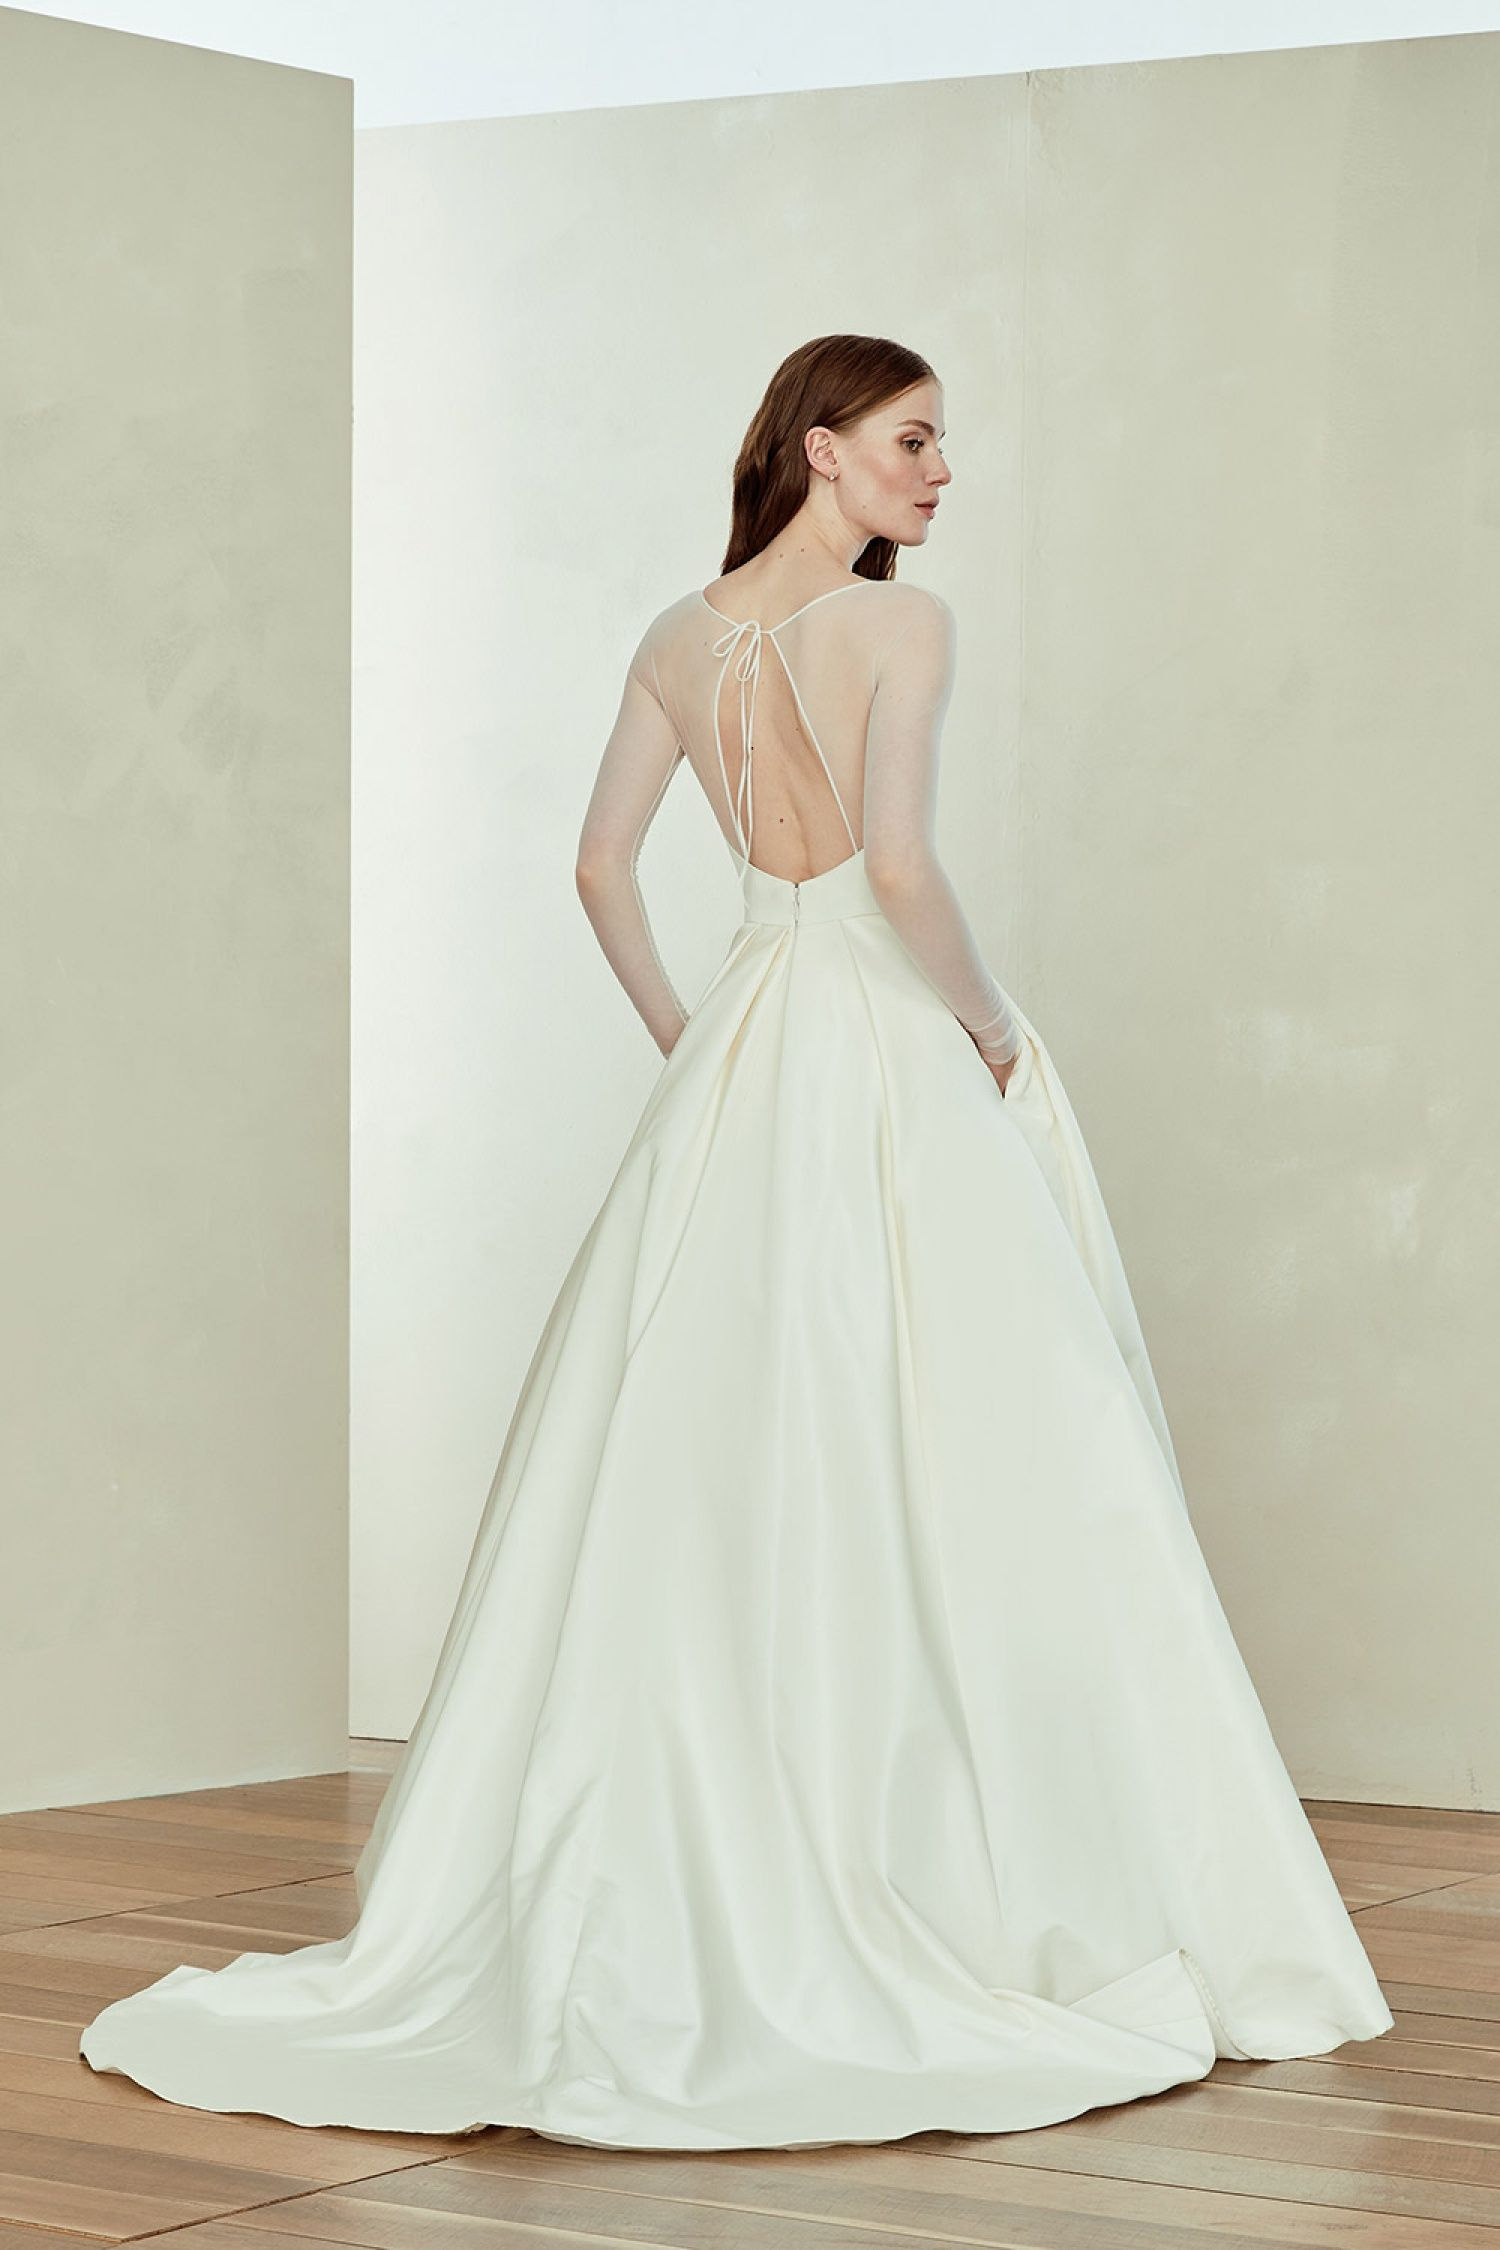 16++ Wedding gown dry cleaning near me info